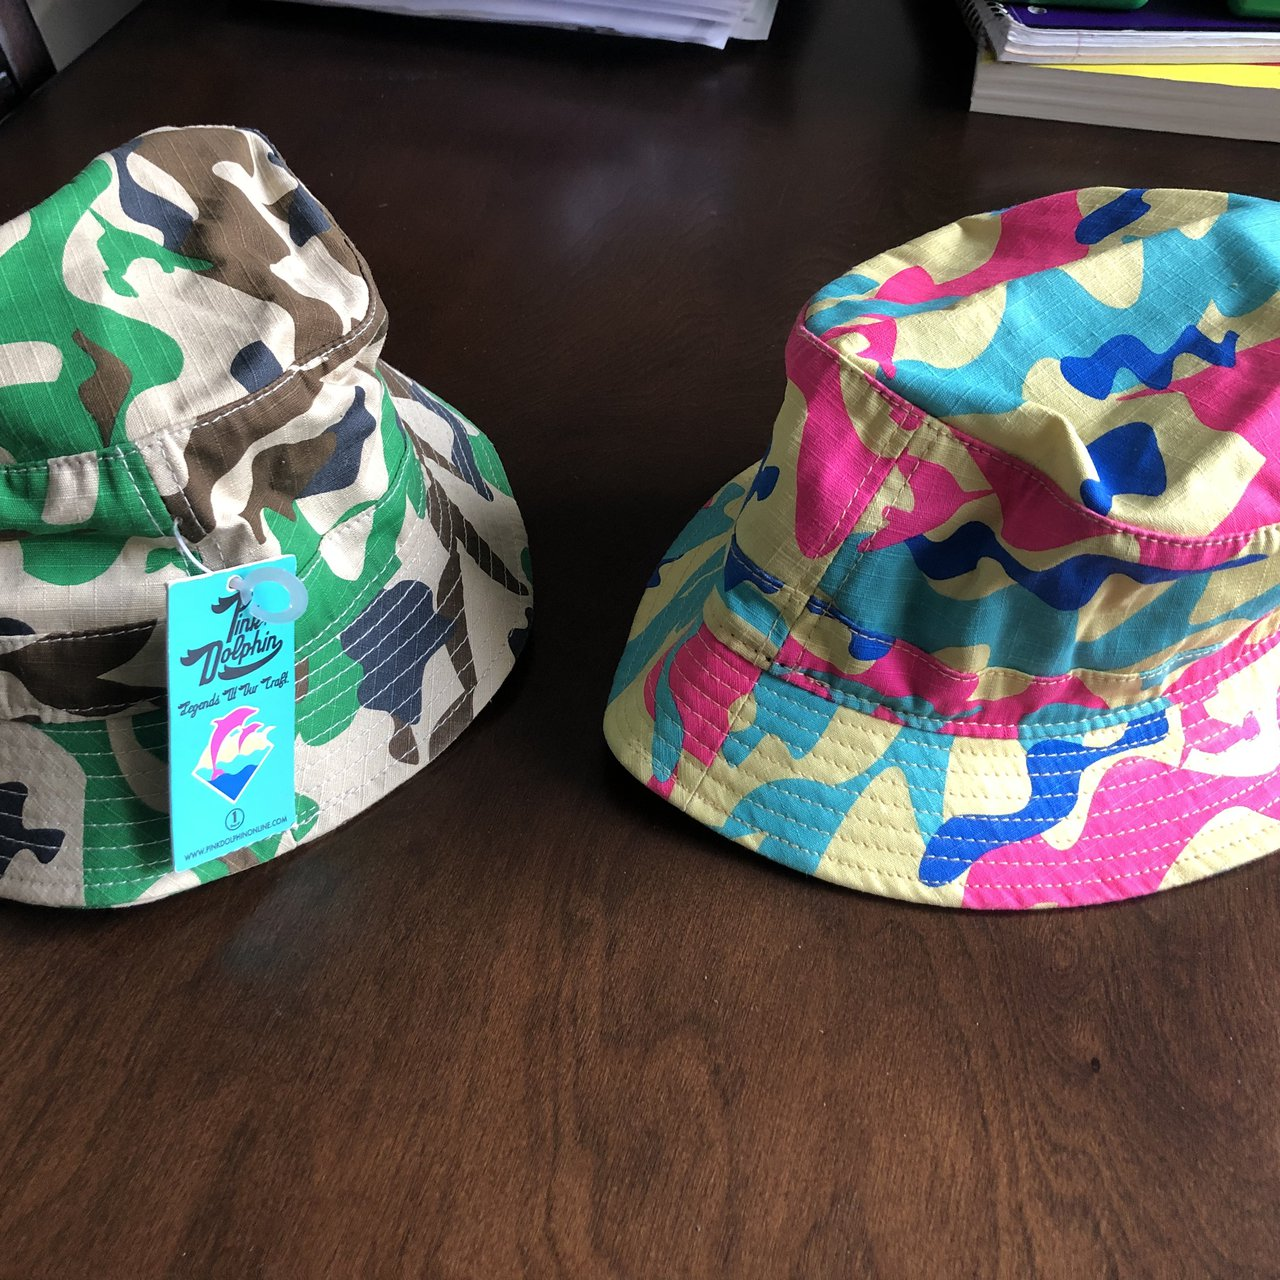 100% Authentic Pink Dolphin Bucket Hats bought Summer 2013   - Depop 982a4d315bf6